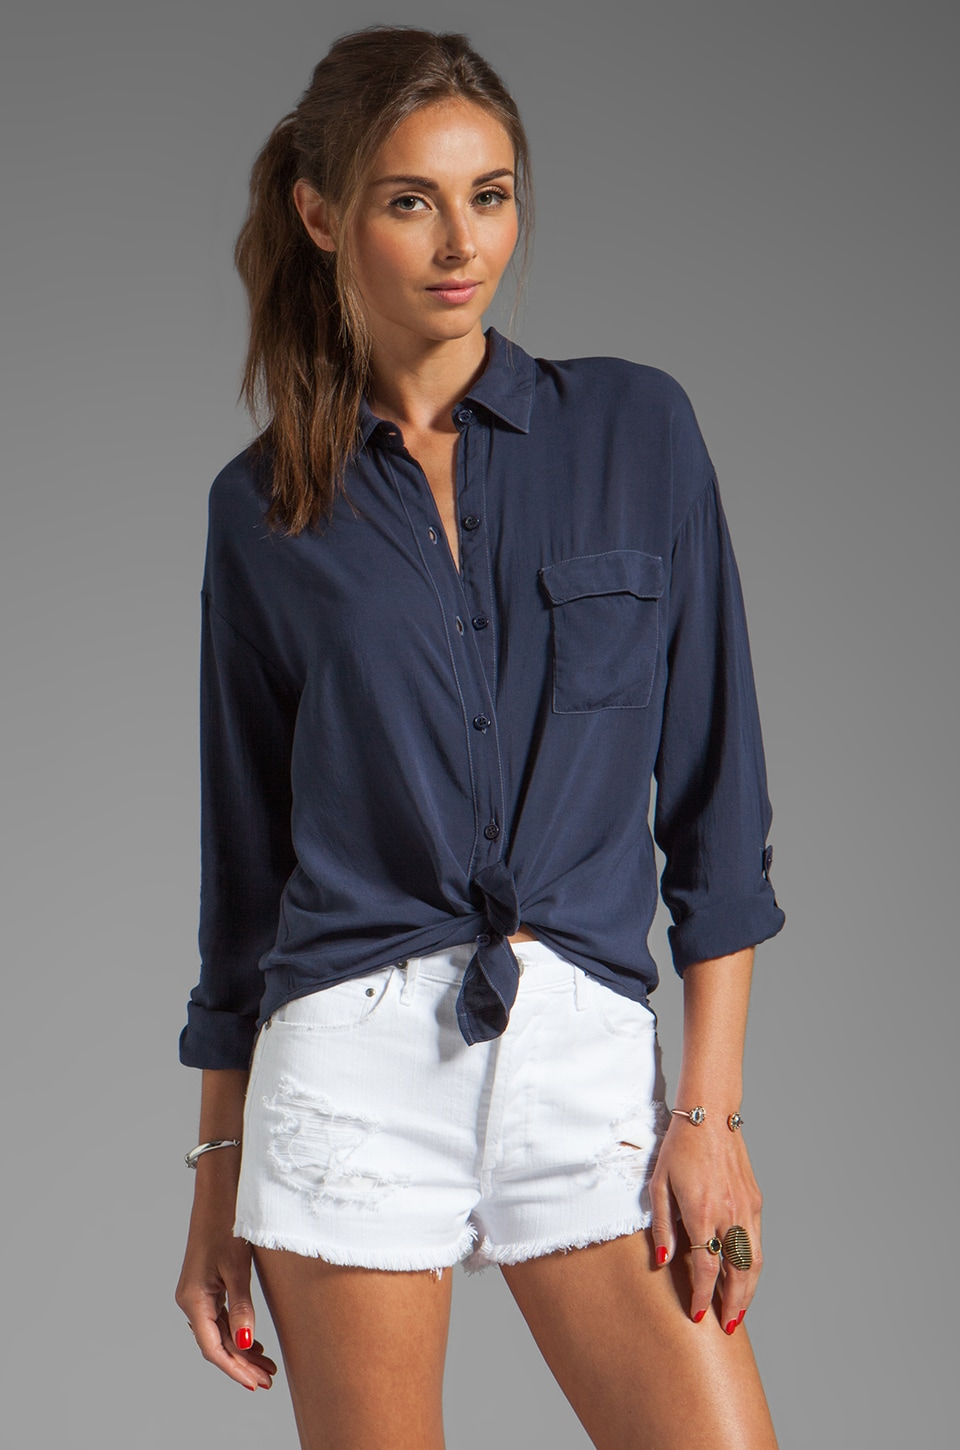 Splendid Shirting Button Up in Navy